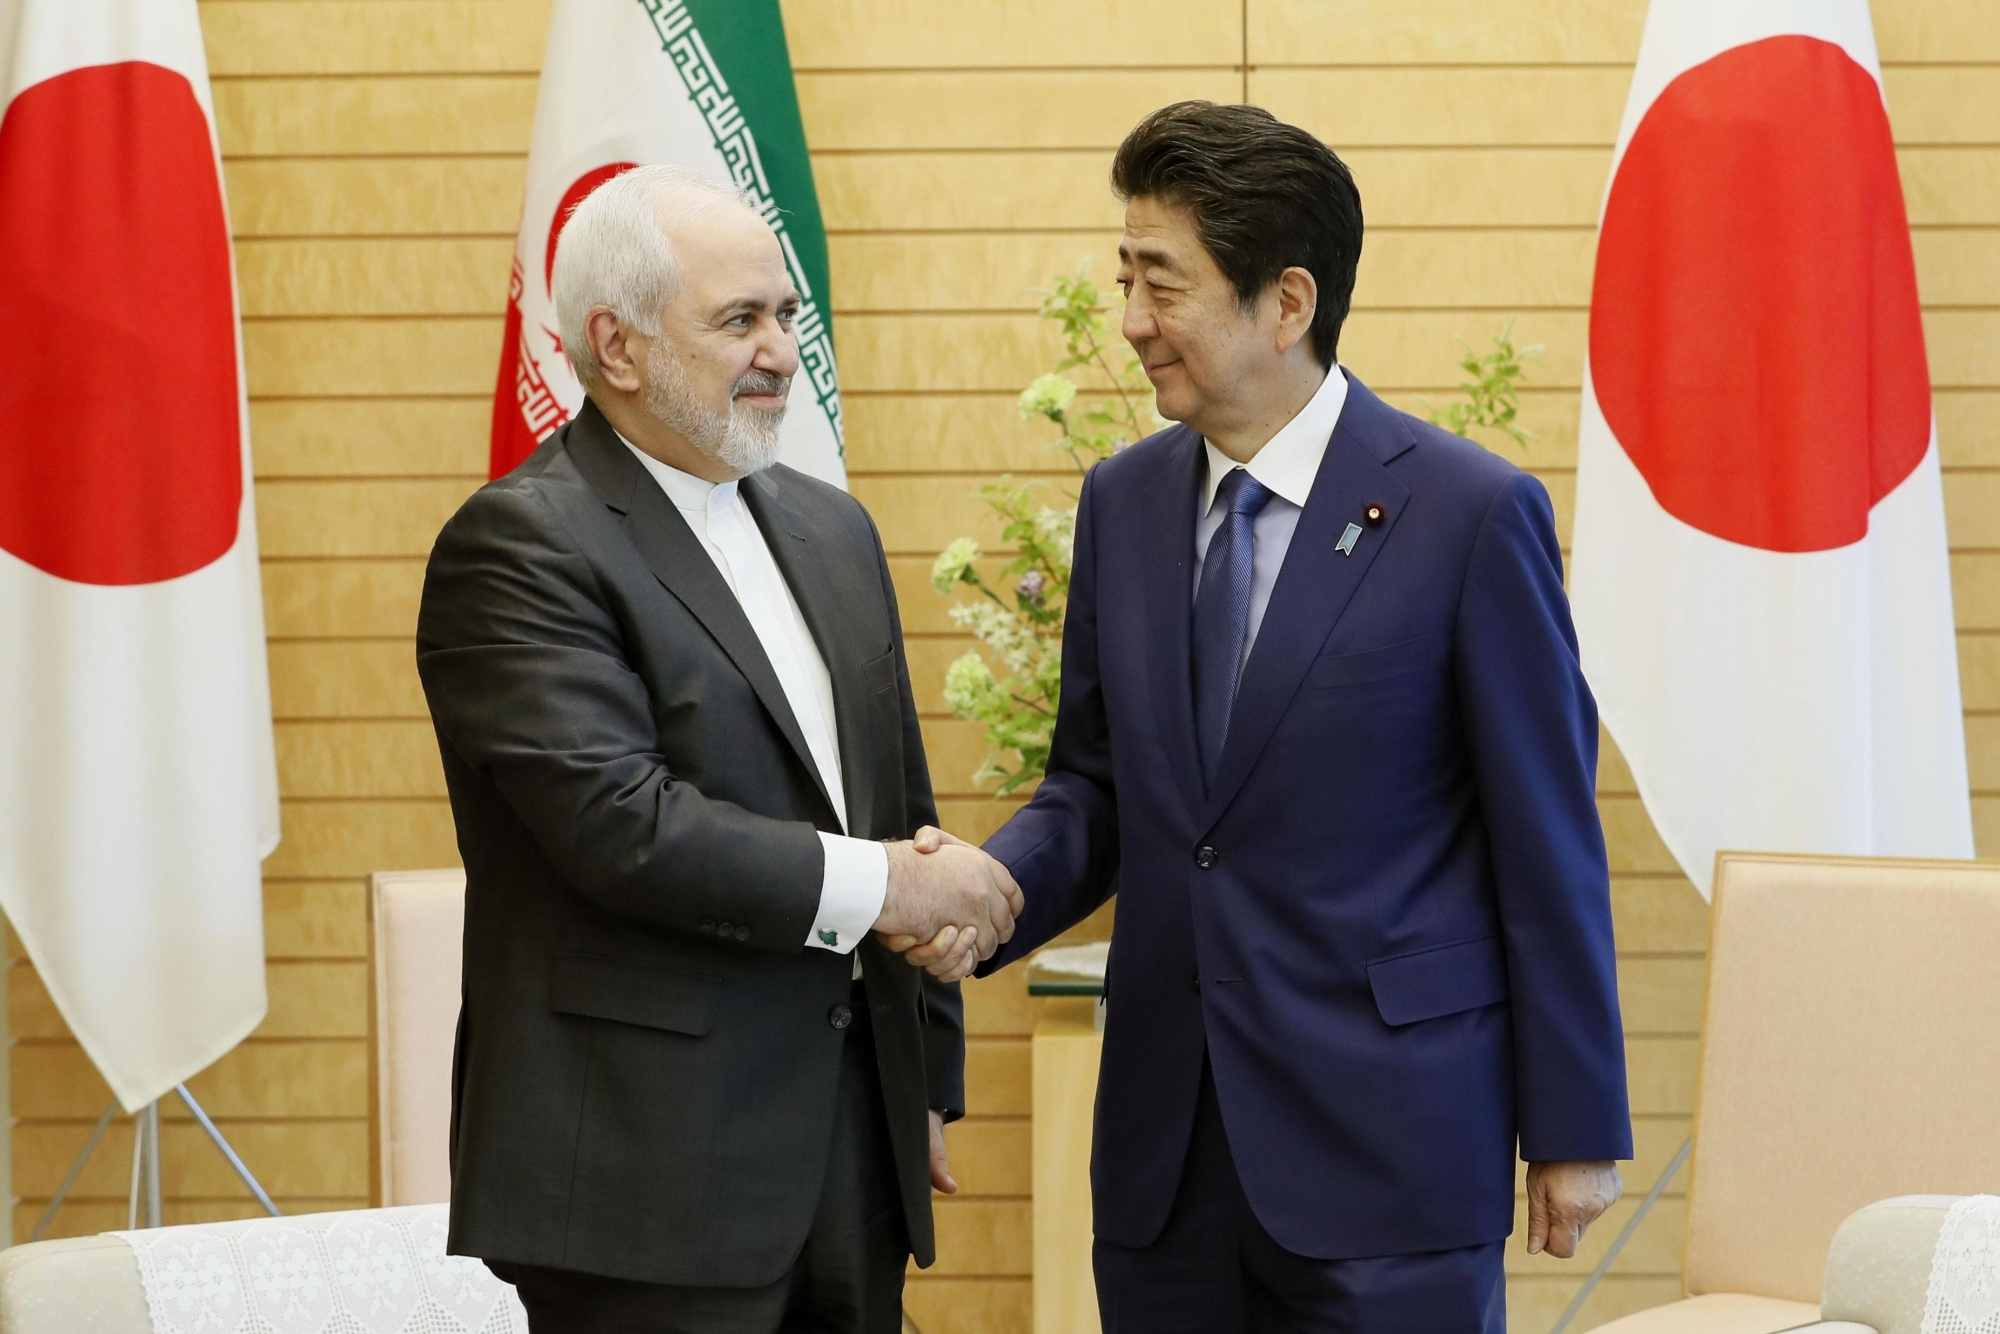 Prime Minister Shinzo Abe and Iranian Foreign Minister Mohammad Javad Zarif shake hands at the Prime Minister's Office on Thursday. | KYODO